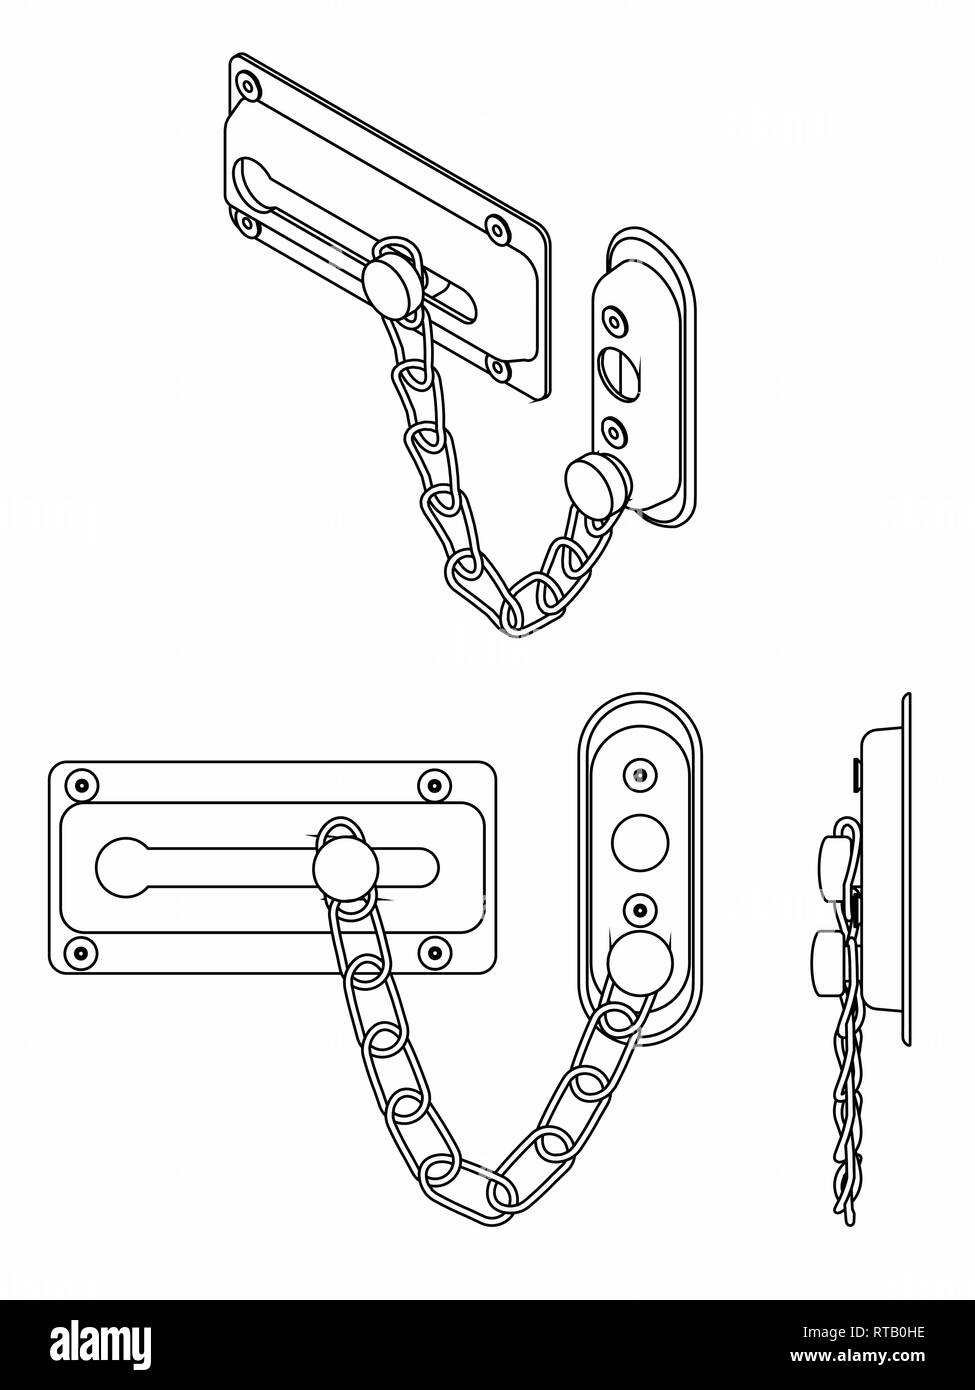 Chain door lock. Outline only. Stock Vector